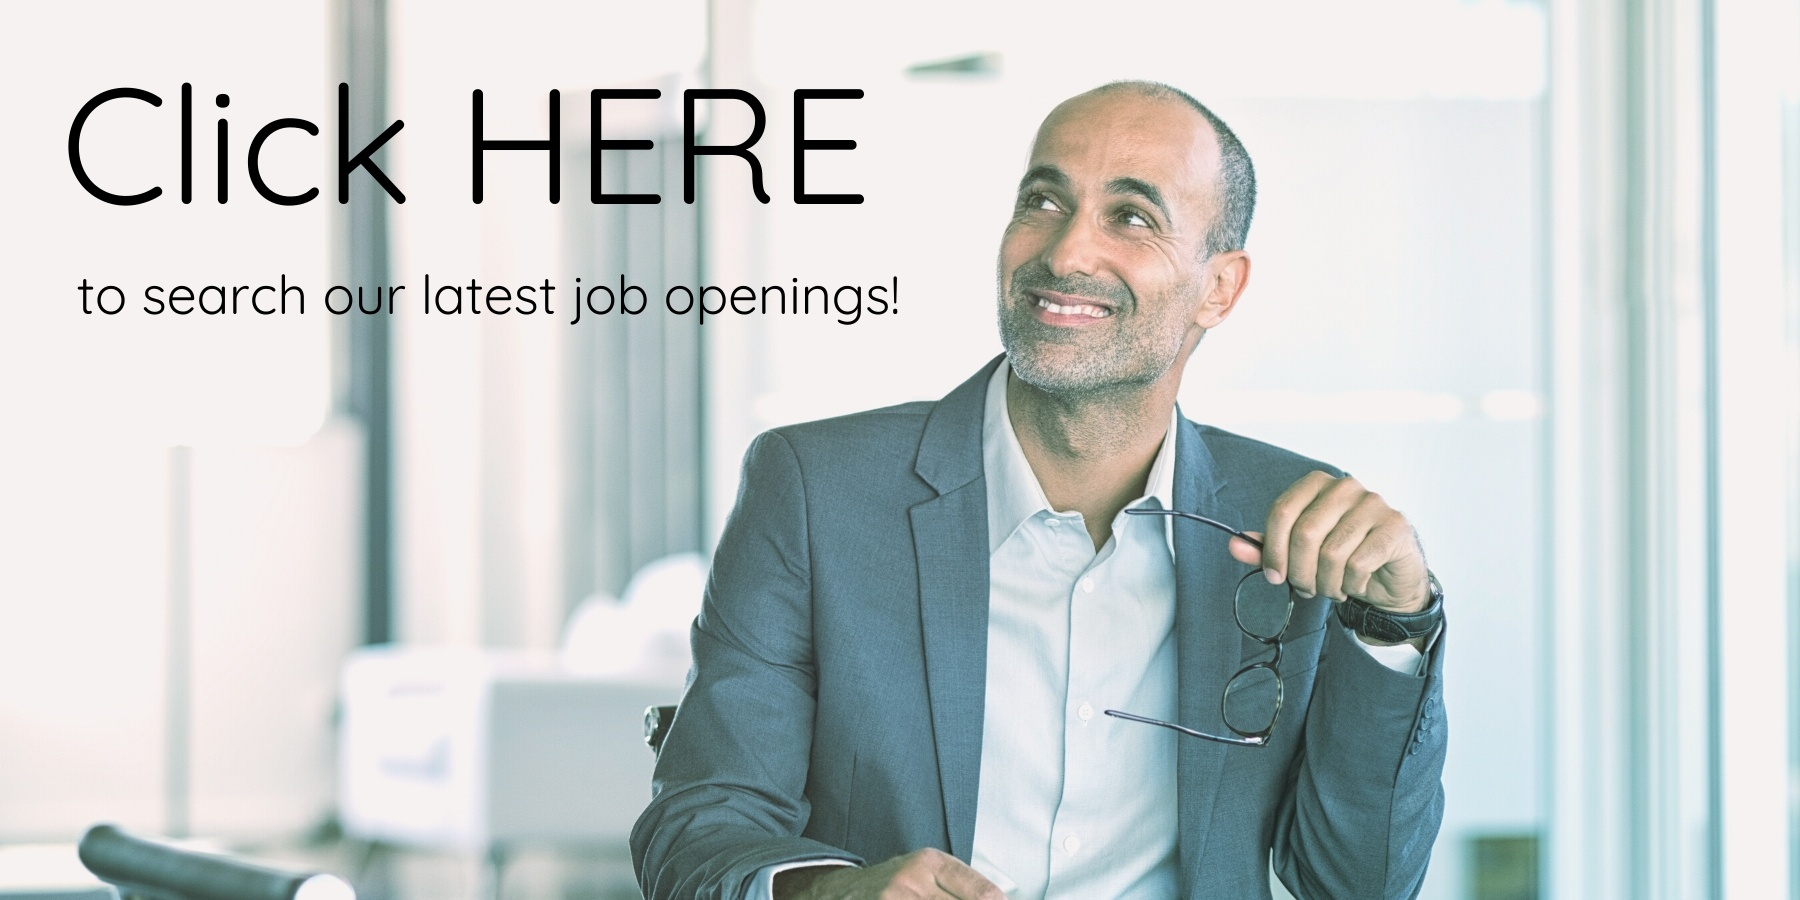 Search our latest job openings